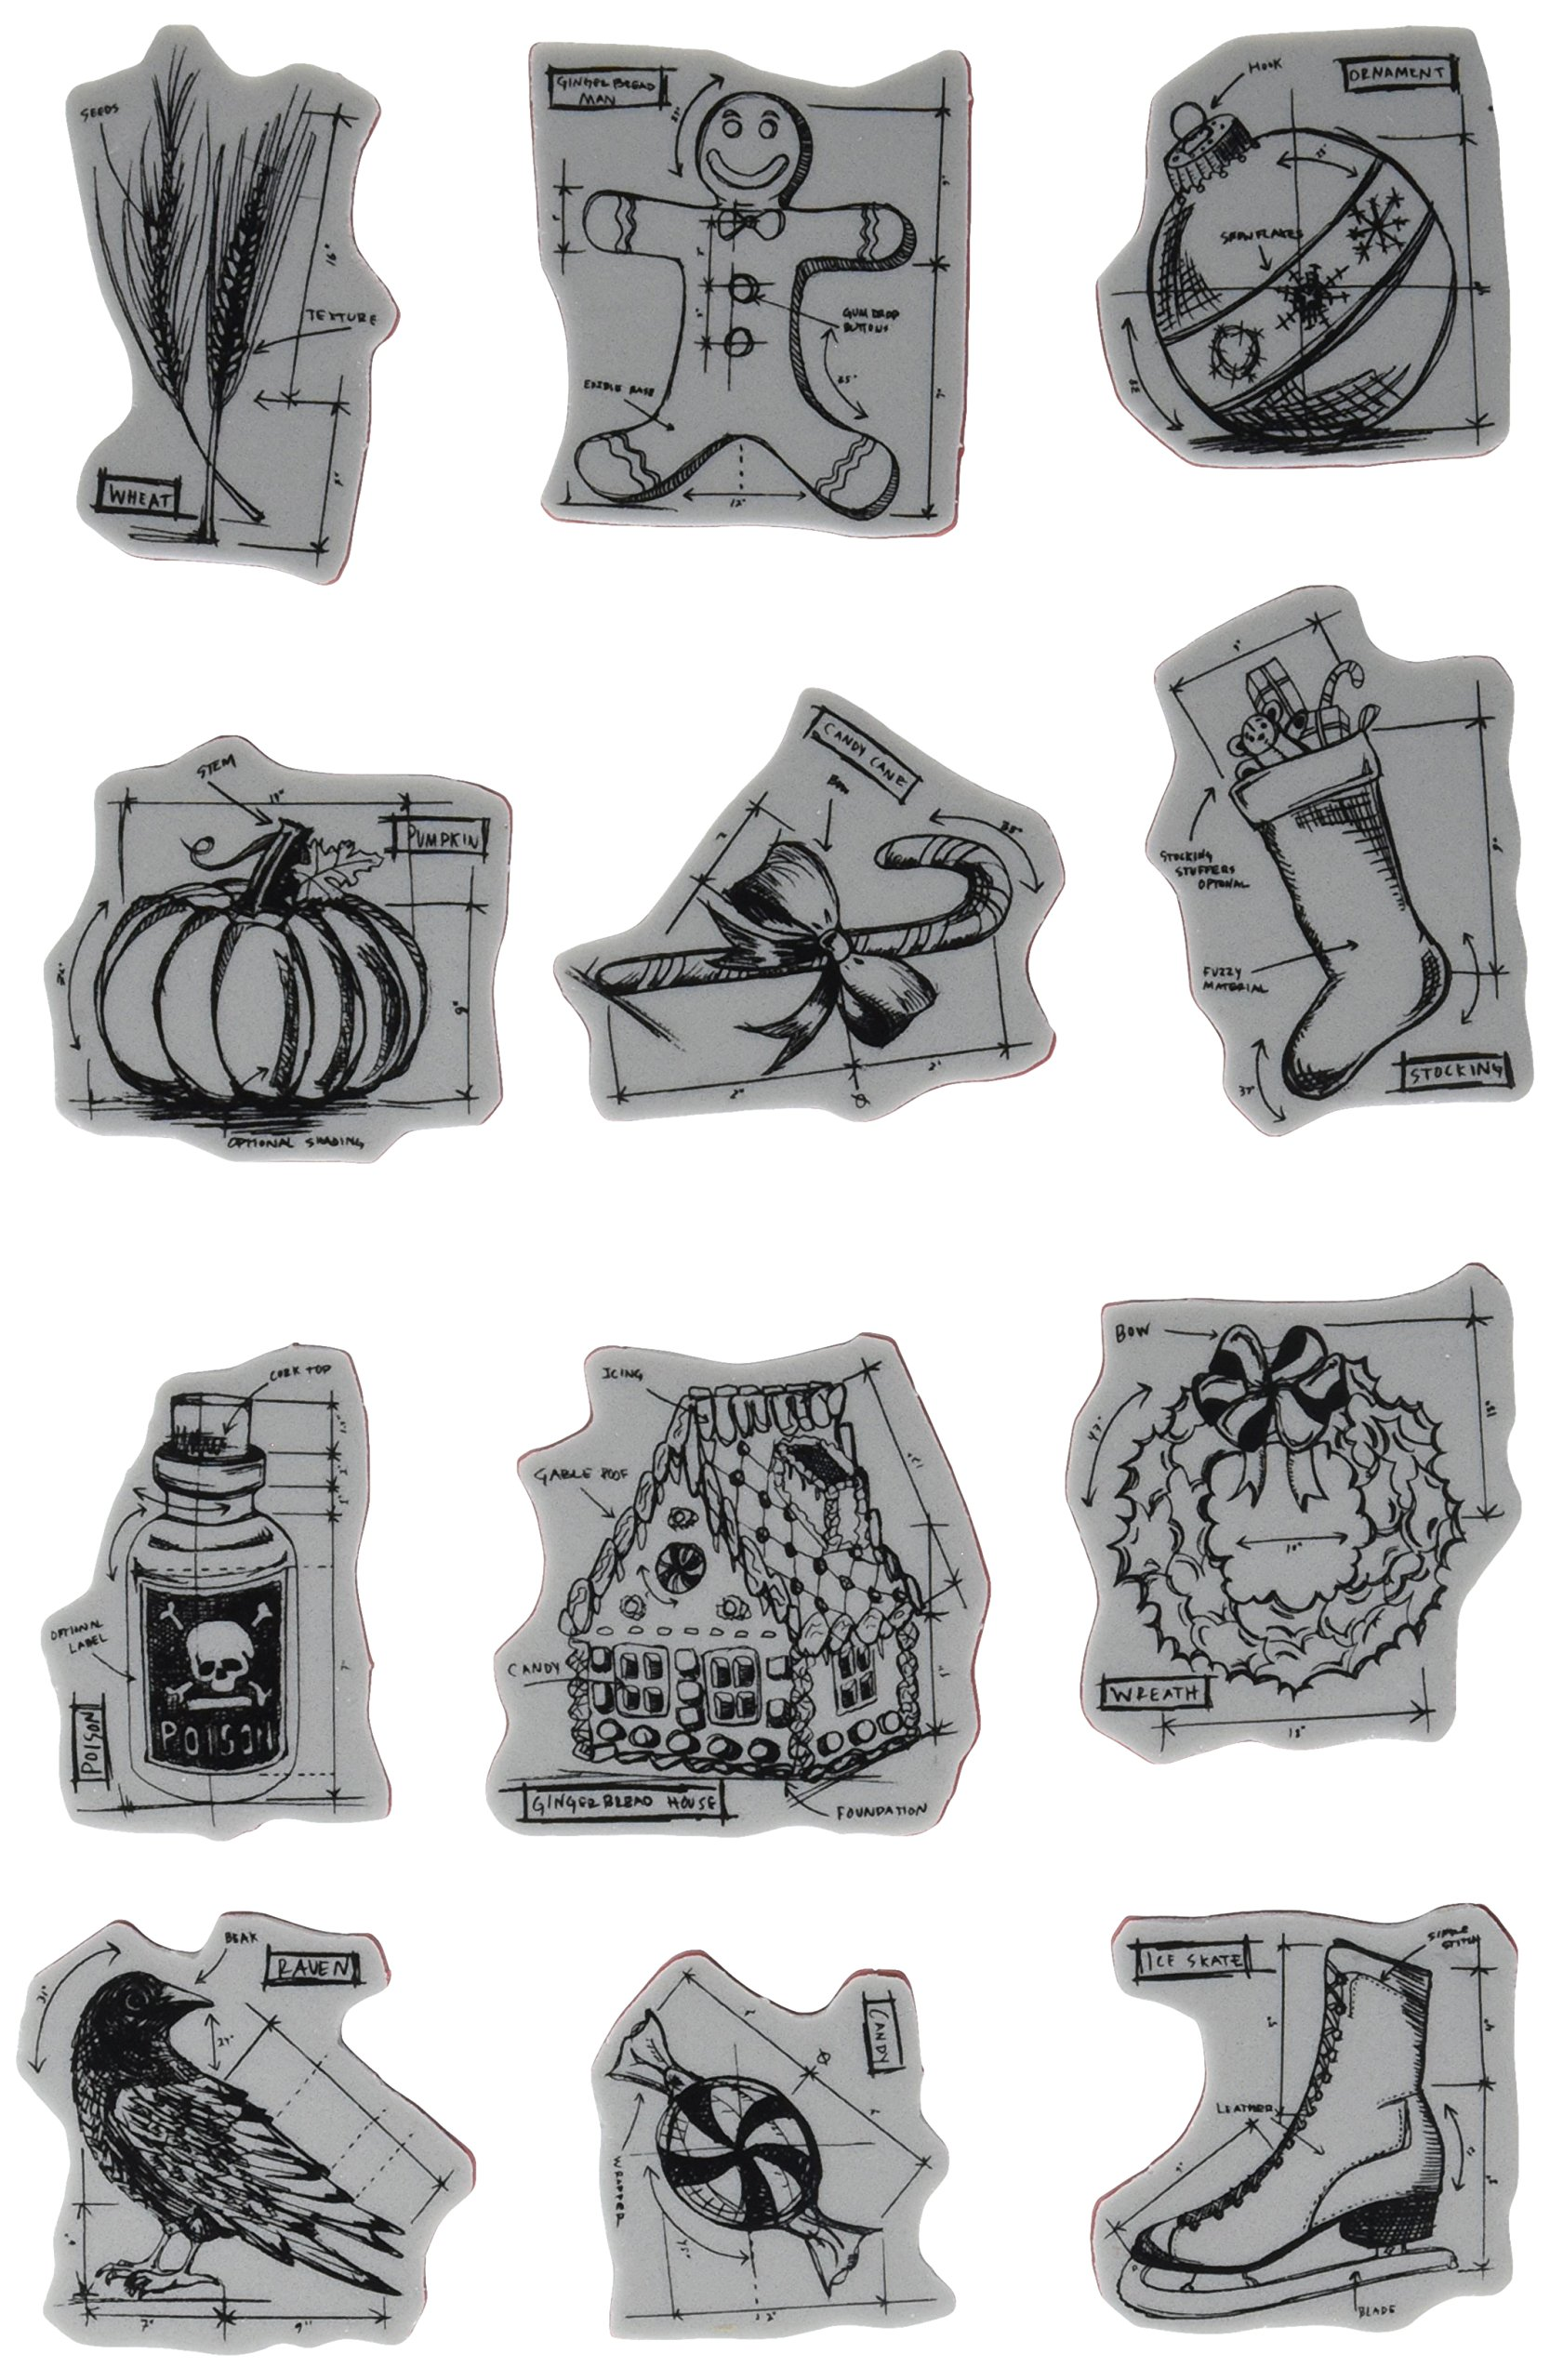 Stampers Anonymous Tim Holtz Cling Rubber Stamp Set, 7-Inch by 8.5-Inch, Mini Blueprints Number 5